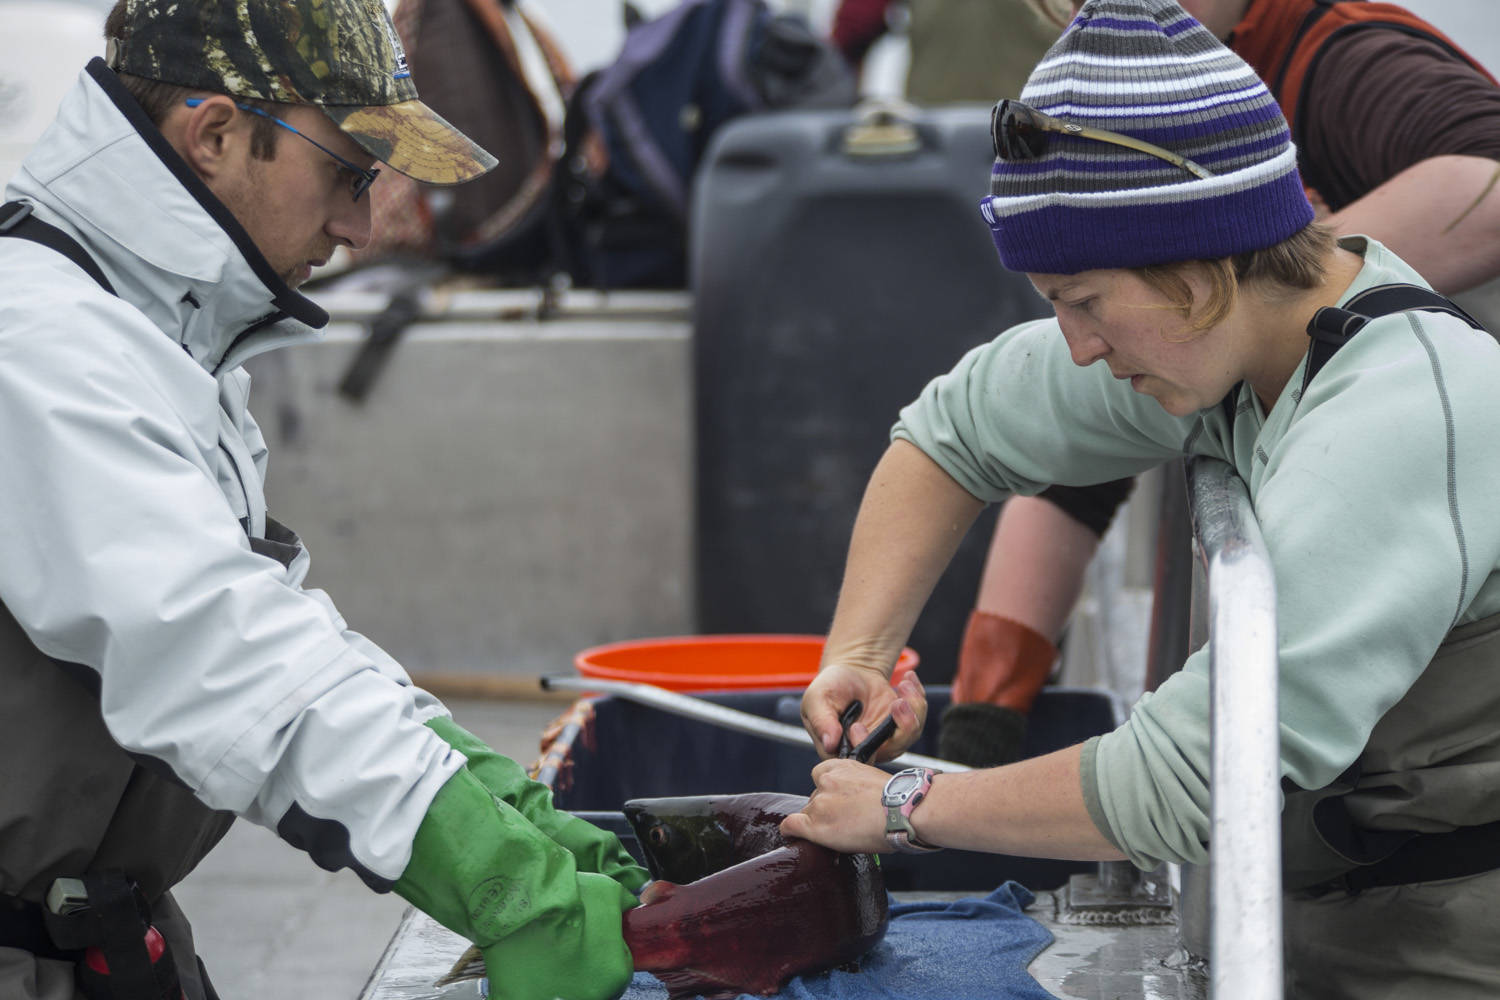 University of Washington researchers Martini Arostegui, left, and Jackie Carter tag sockeye salmon in 2015. (Courtesy Photo | Dennis Wise via University of Washington)